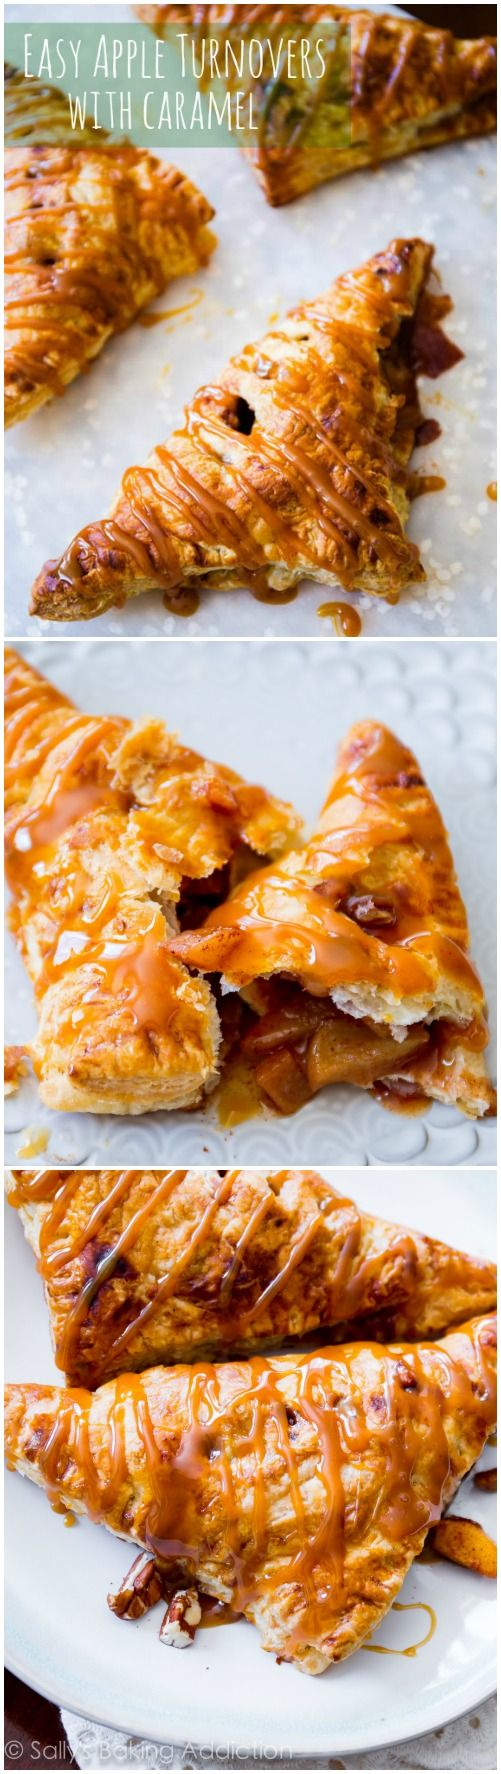 Caramel Apple Turnovers~2 small peeled & finely diced apples 1t cornstarch 1/4C chopped pecans, optional 1 T vanilla extract 1 t cinnamon 1/2C sugar 1 package (2 sheets) frozen puff pastry, thawed 1 large egg, beaten 1. Mix the brown sugar, milk, butter and salt in a saucepan over medium-high heat. 2. Whisk while cooking for 5-7 minutes, or until it thickens. 3. Add the vanilla and cook for about another minute. 4. Remove from heat and let cool until ready to serve on pancakes. 400 for 20…